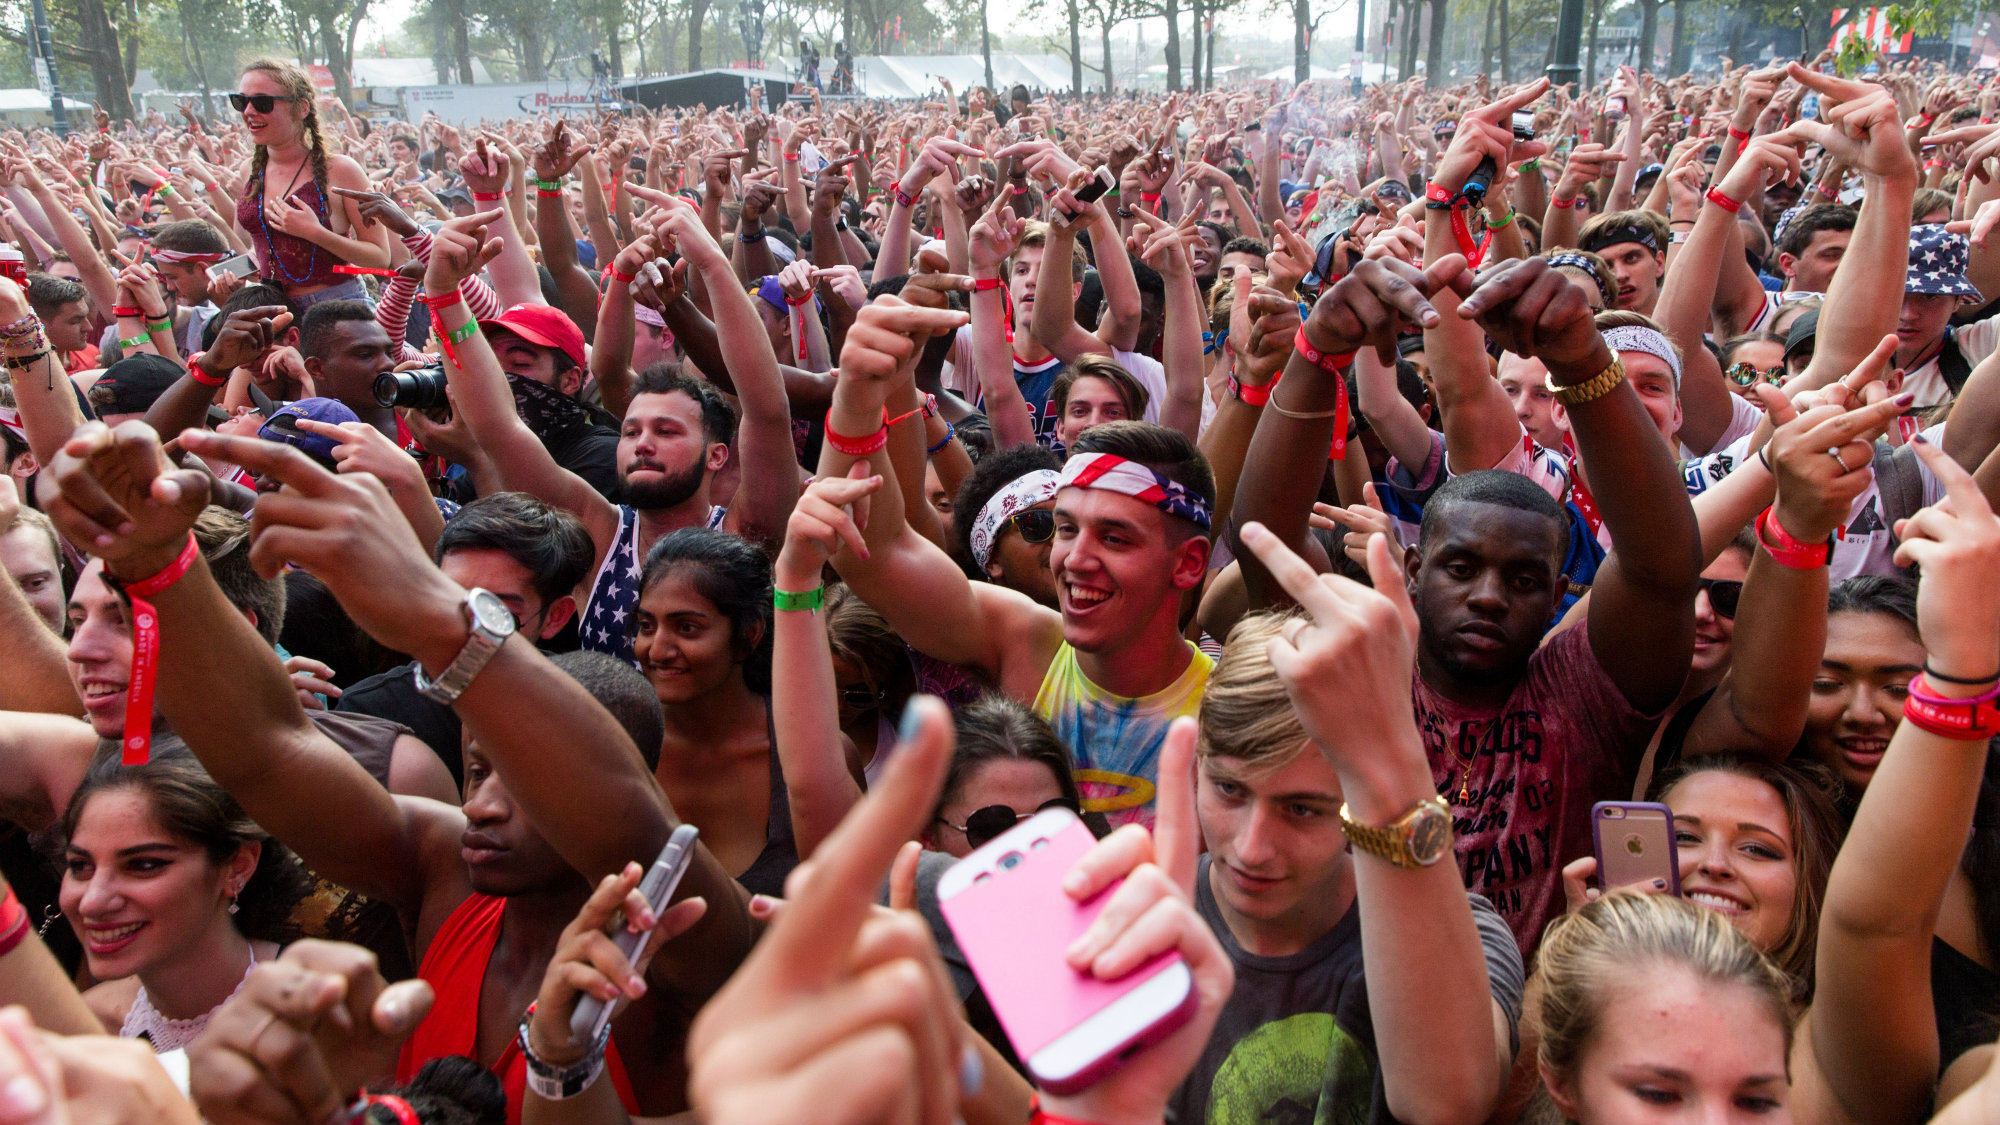 Crowd of people holding up their middle fingers